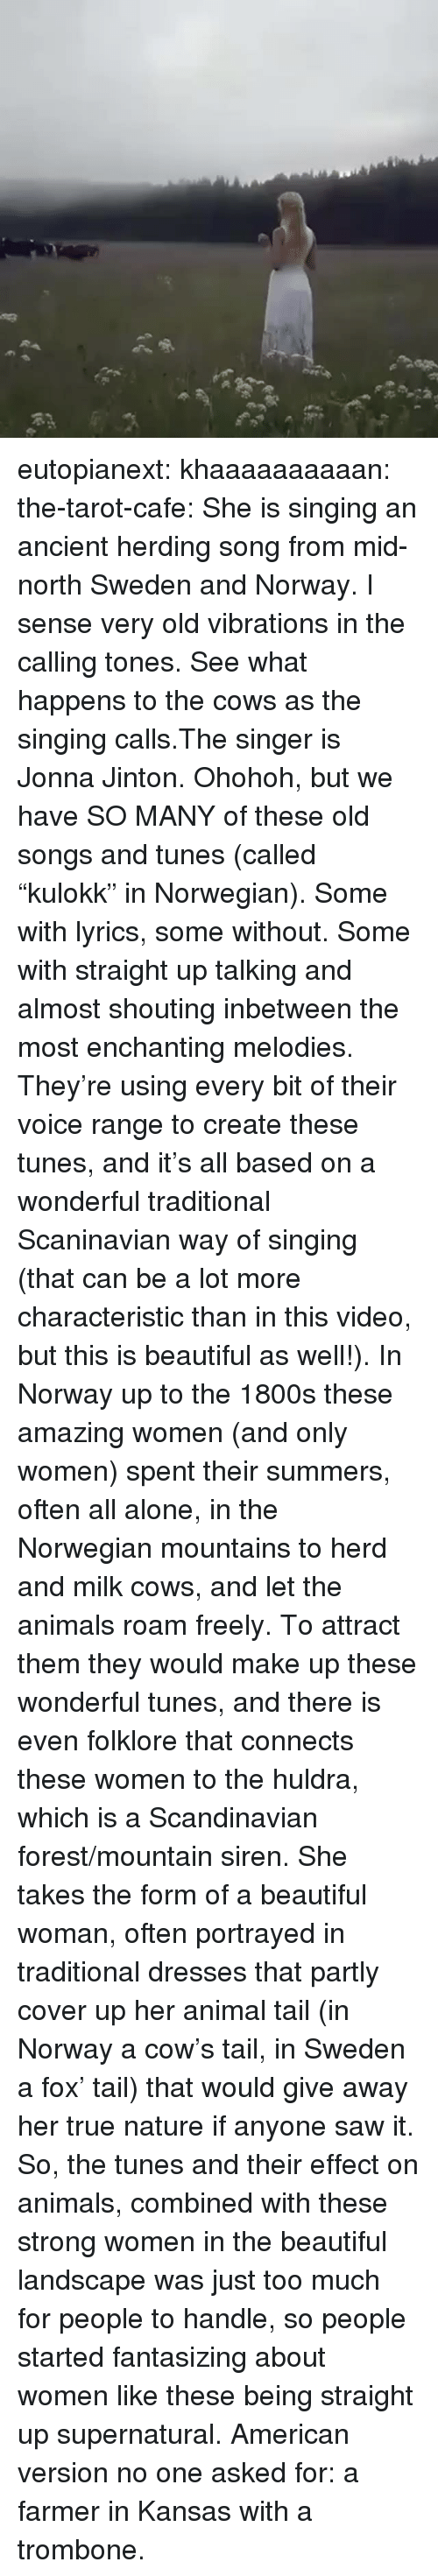 "tunes: eutopianext:  khaaaaaaaaaan:  the-tarot-cafe:   She is singing an ancient herding song from mid-north Sweden and Norway. I sense very old vibrations in the calling tones. See what happens to the cows as the singing calls.The singer is Jonna Jinton.   Ohohoh, but we have SO MANY of these old songs and tunes (called ""kulokk"" in Norwegian). Some with lyrics, some without. Some with straight up talking and almost shouting inbetween the most enchanting melodies. They're using every bit of their voice range to create these tunes, and it's all based on a wonderful traditional Scaninavian way of singing (that can be a lot more characteristic than in this video, but this is beautiful as well!).  In Norway up to the 1800s these amazing women (and only women) spent their summers, often all alone, in the Norwegian mountains to herd and milk cows, and let the animals roam freely. To attract them they would make up these wonderful tunes, and there is even folklore that connects these women to the huldra, which is a Scandinavian forest/mountain siren. She takes the form of a beautiful woman, often portrayed in traditional dresses that partly cover up her animal tail (in Norway a cow's tail, in Sweden a fox' tail) that would give away her true nature if anyone saw it.  So, the tunes and their effect on animals, combined with these strong women in the beautiful landscape was just too much for people to handle, so people started fantasizing about women like these being straight up supernatural.  American version no one asked for: a farmer  in Kansas   with a trombone."